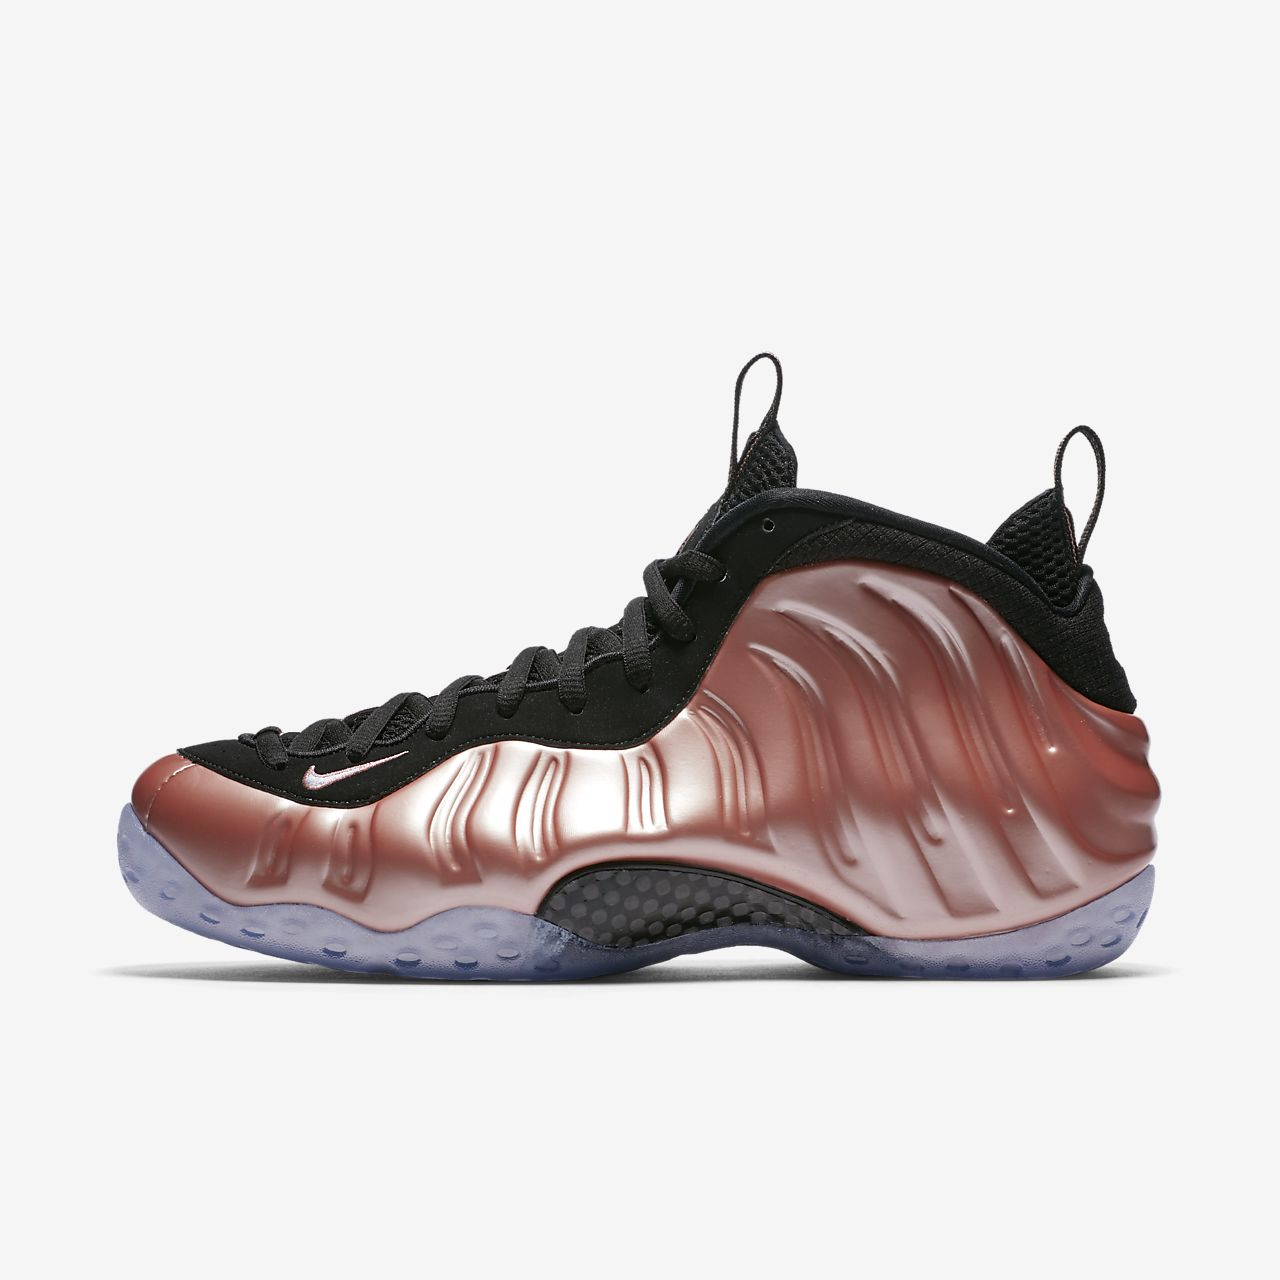 Nike Air Foamposite One Mens Shoe